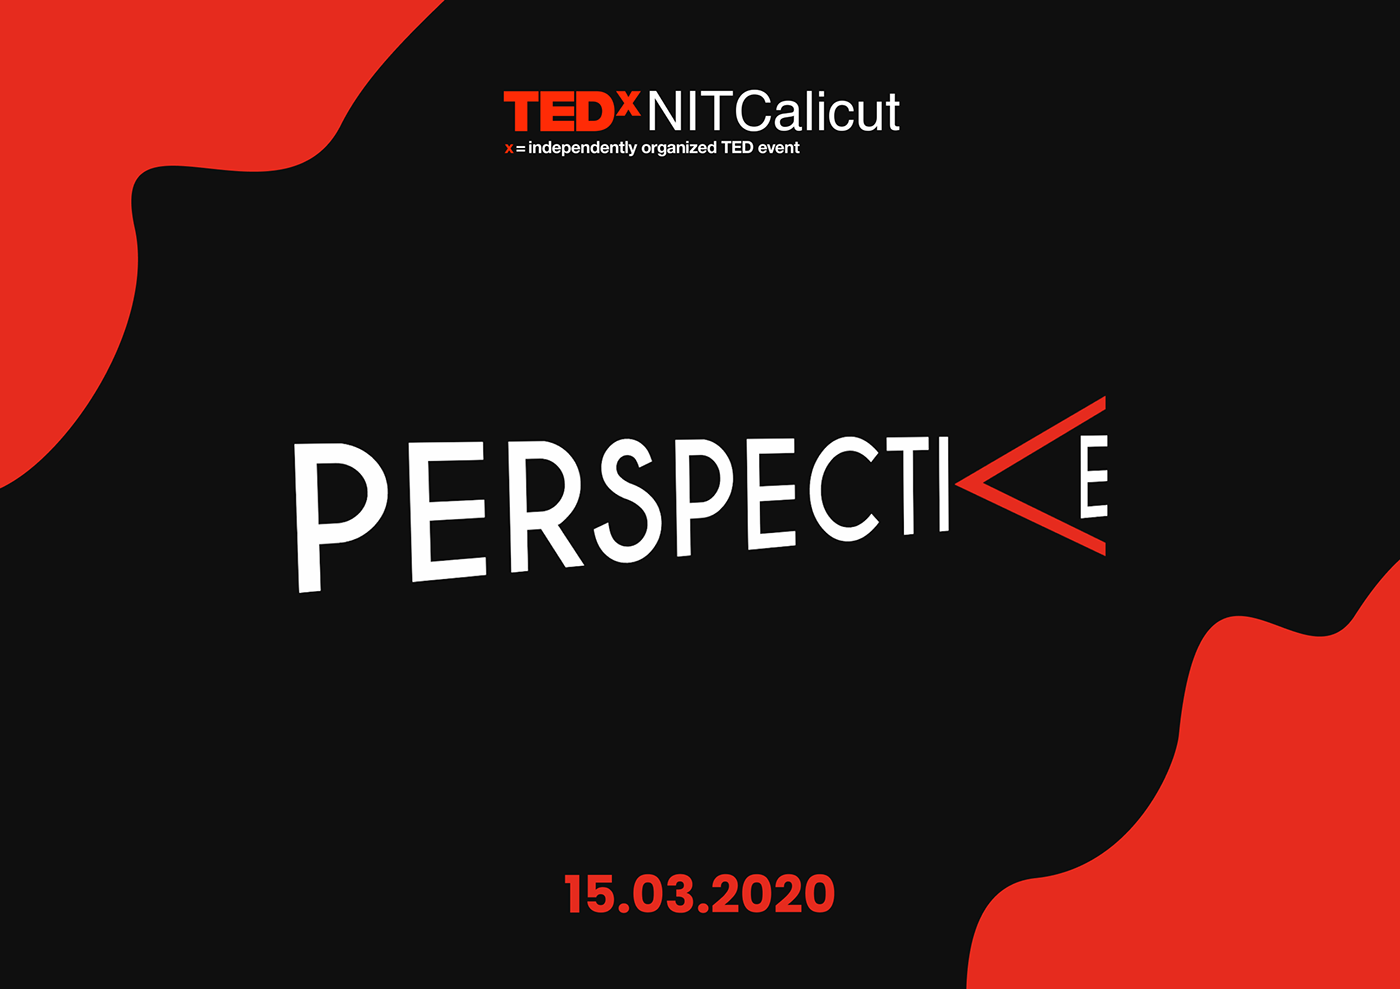 TEDx NIT Calicut Marketing Brochure